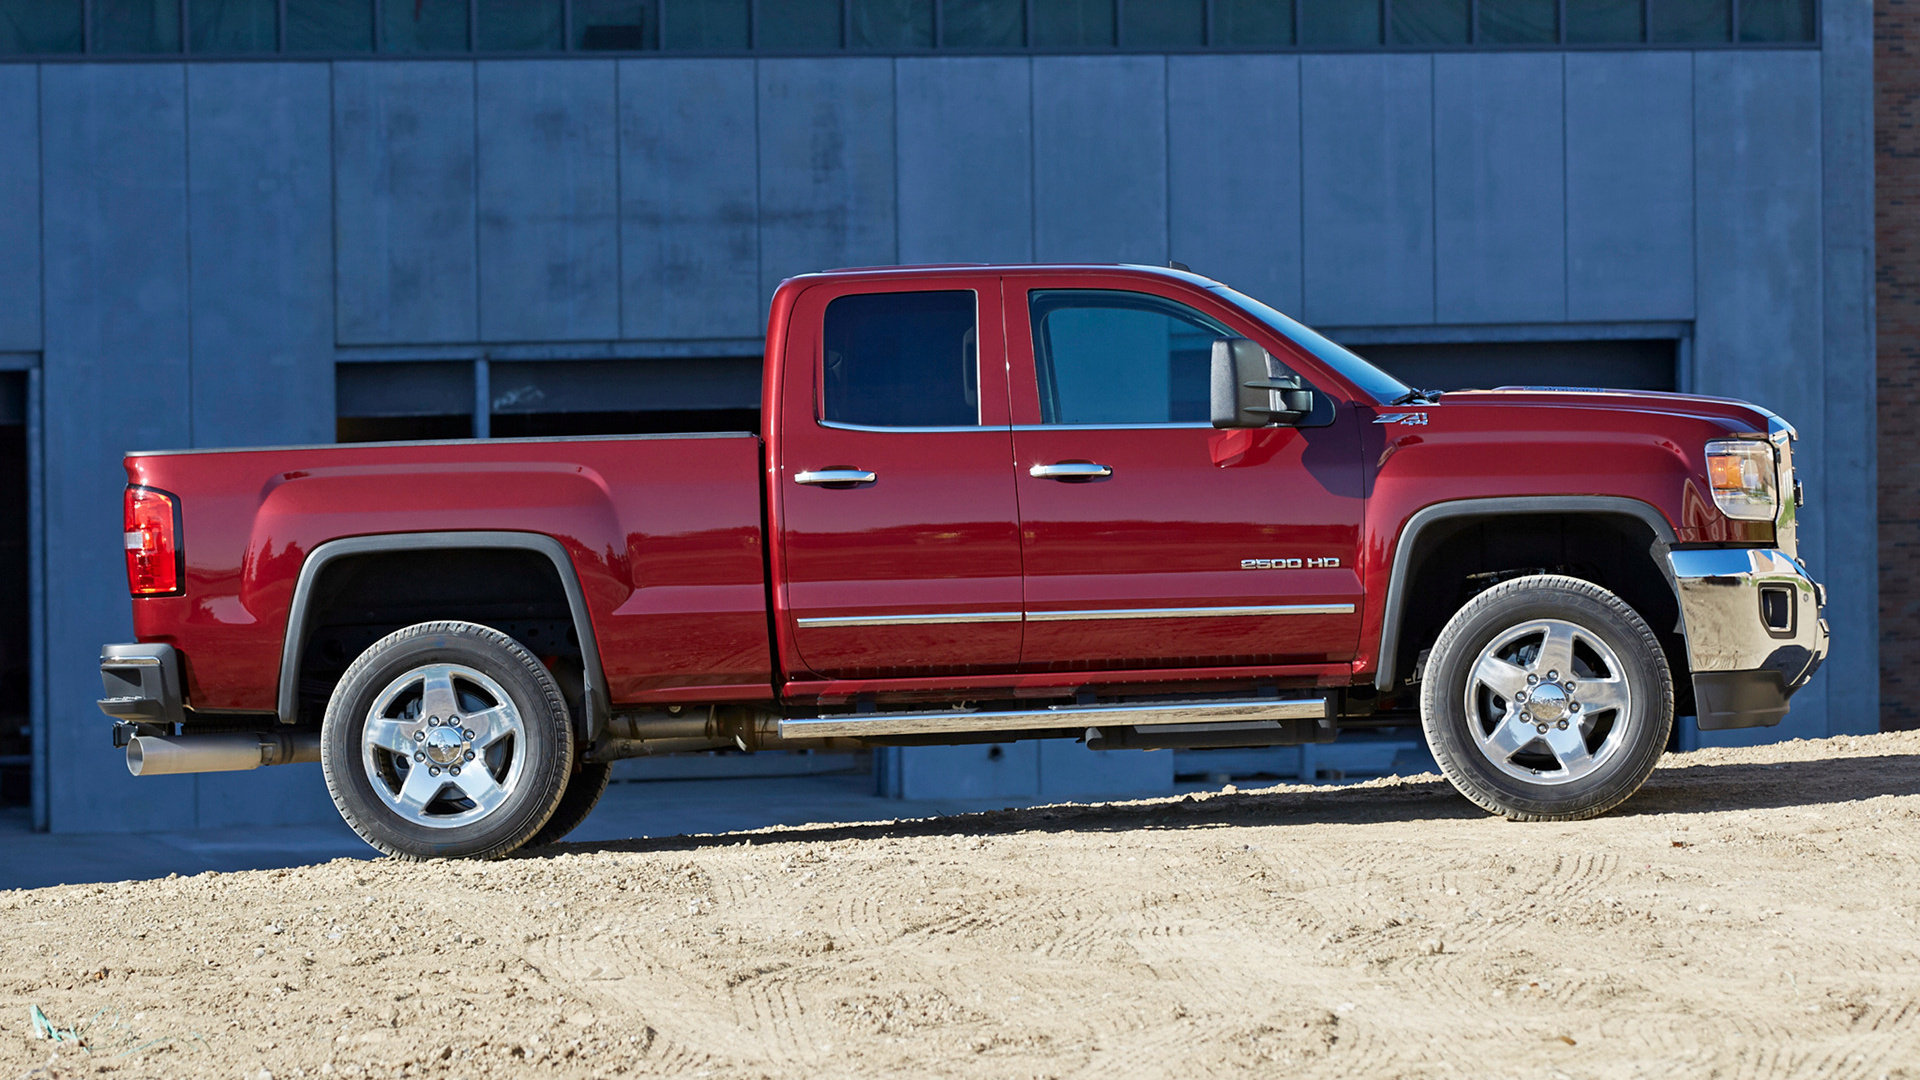 GMC Sierra 2500 HD SLT Double Cab (2015) Wallpapers and HD ...